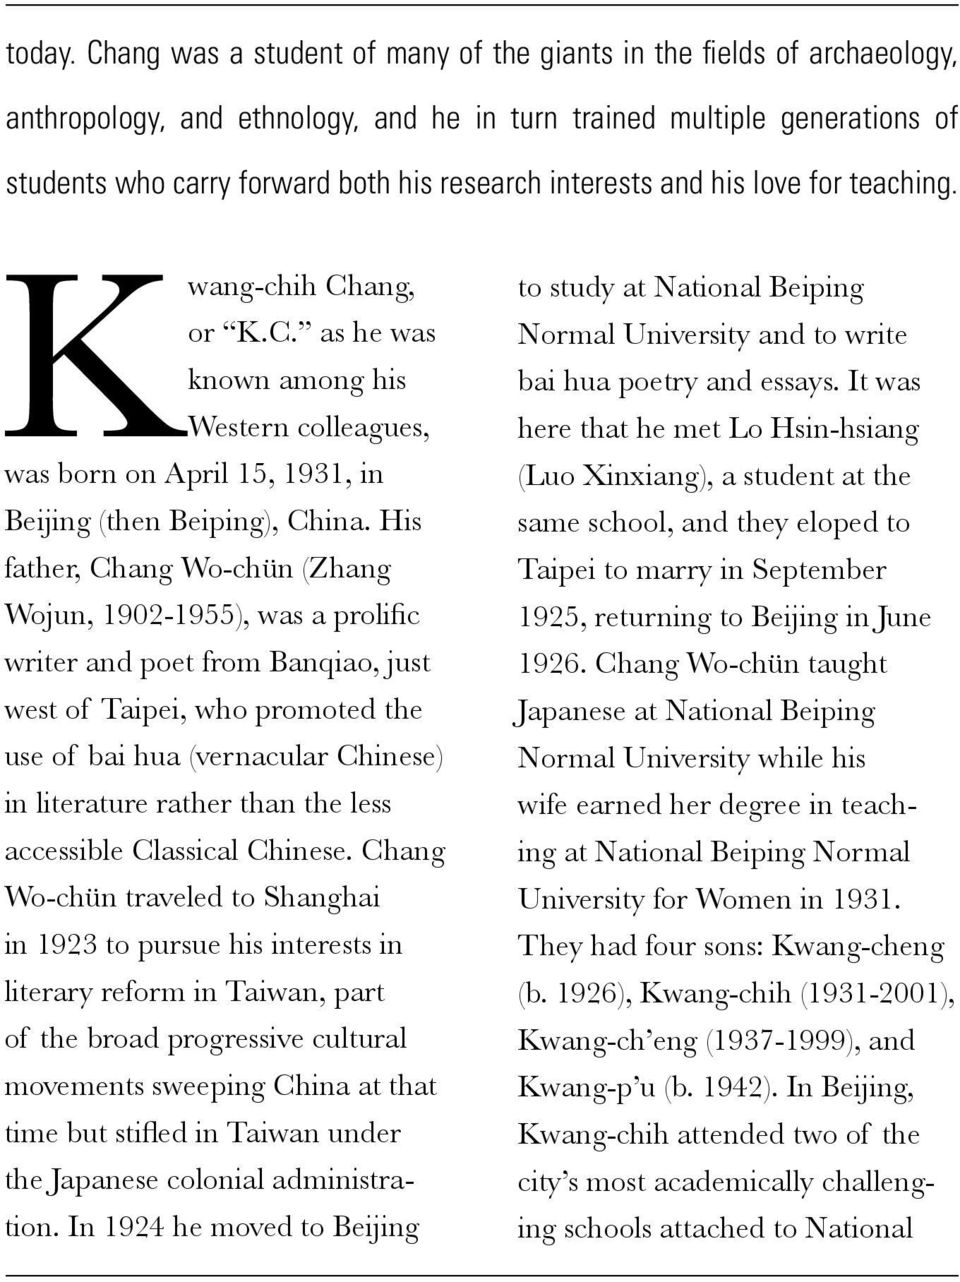 interests and his love for teaching. Kwang-chih Chang, or K.C. as he was known among his Western colleagues, was born on April 15, 1931, in Beijing (then Beiping), China.